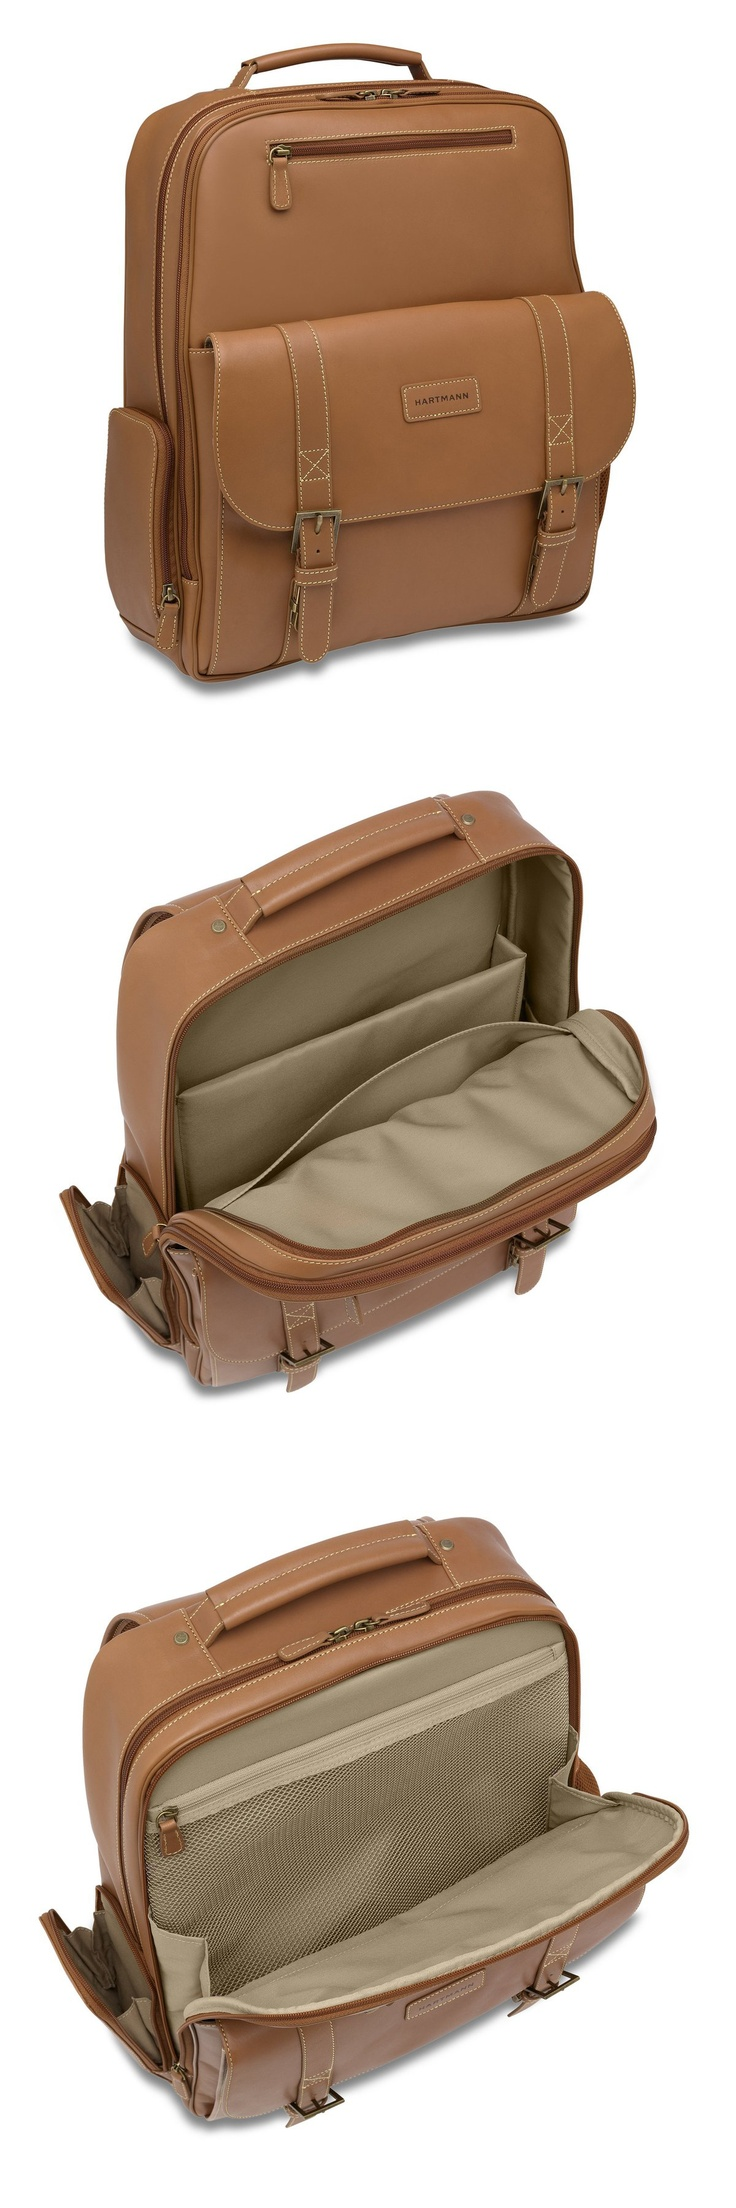 J Hartmann Reserve Saddle Backpack      Equal parts business, travel, and business travel, our new belting leather Saddle Backpack features an elastic mesh pocket and a large, unobstructed packing space in the middle compartment; a padded laptop sleeve in the rear; and an organizational panel for business cards, pens, and smart phone in the front—all lined in water and stain resistant textured fabric. http://bit.ly/JVlRNl